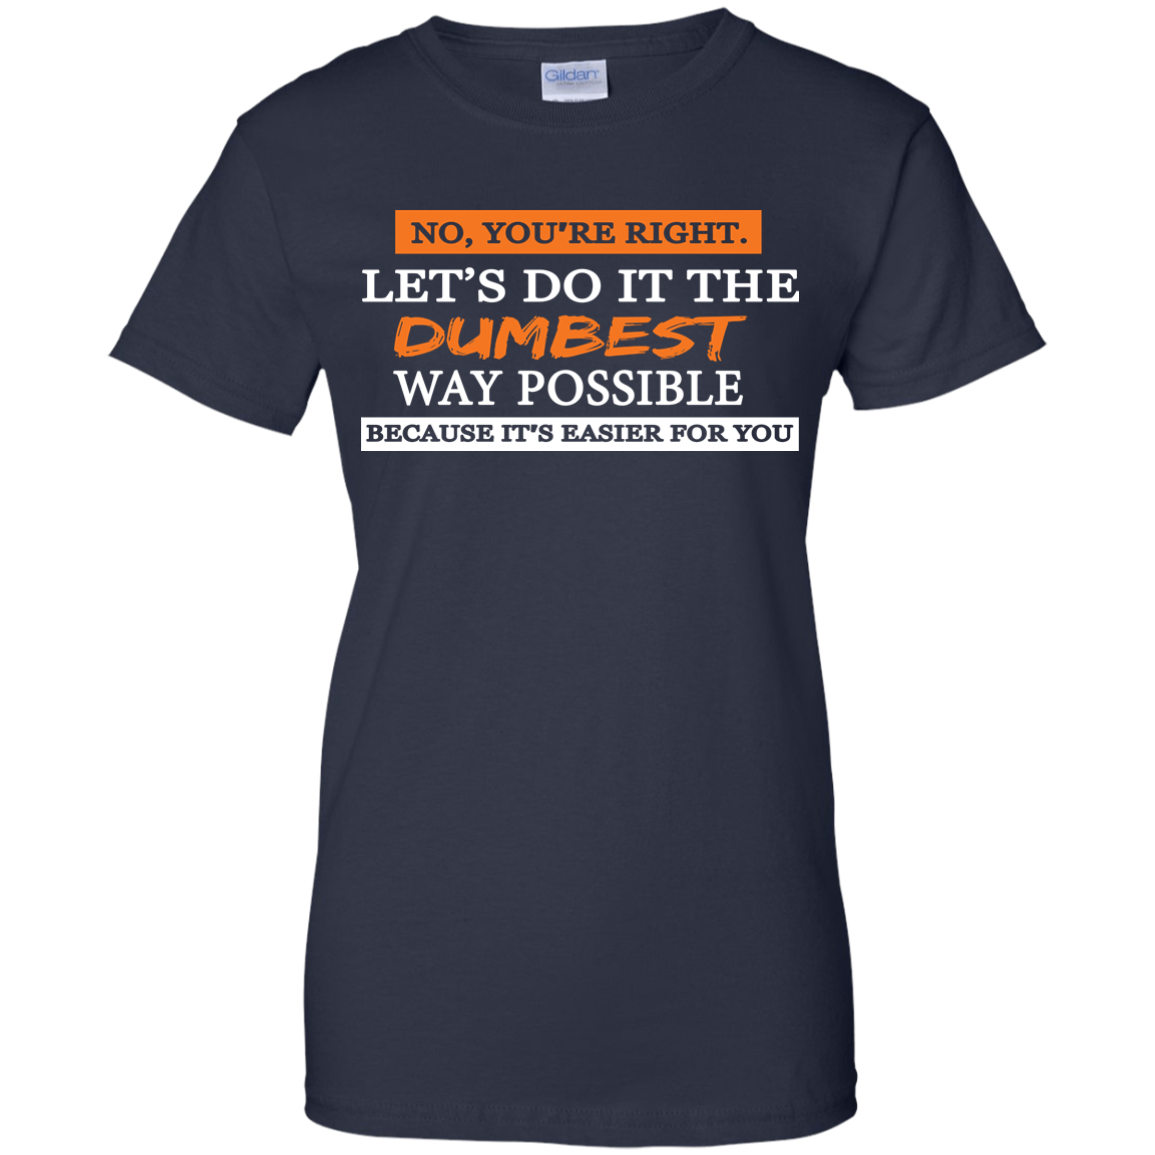 Let's do it the dumbest way possible, T shirt